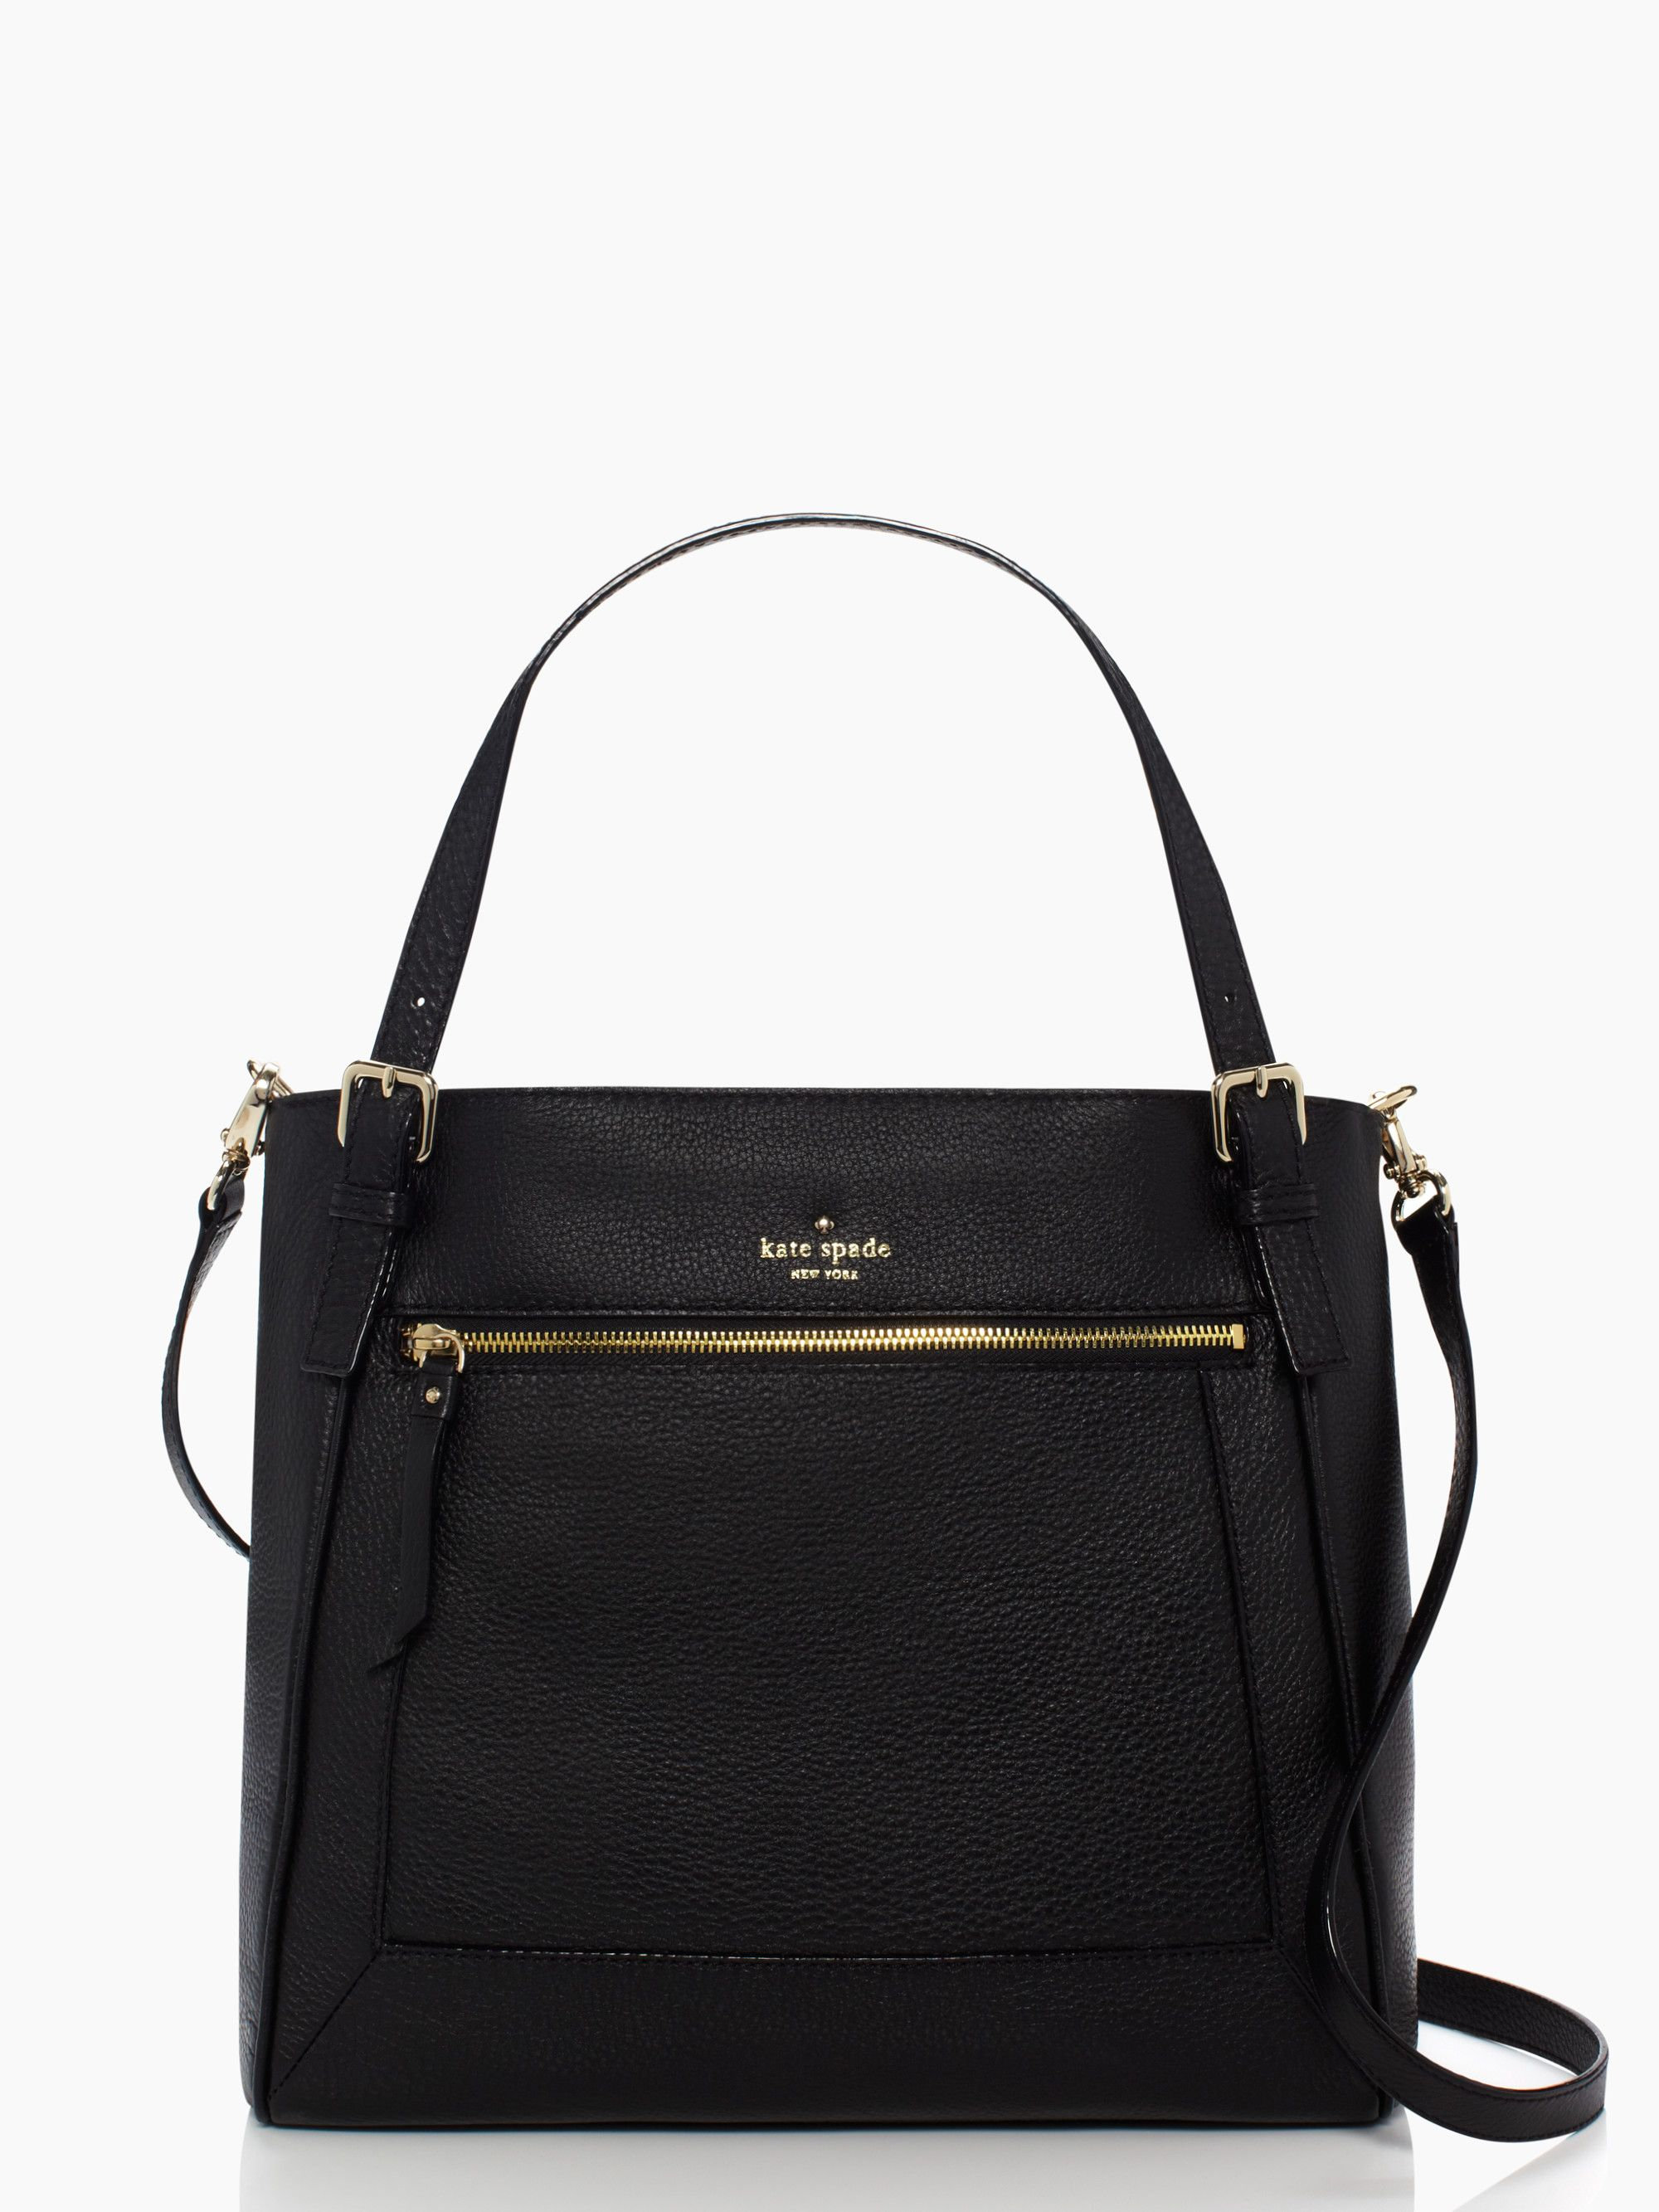 say hello to your new work bag. the peters makes a slight nod to a tote with its boxy body and open top, but its clean graphic lines and compact dimensions are beautifully ladylike.